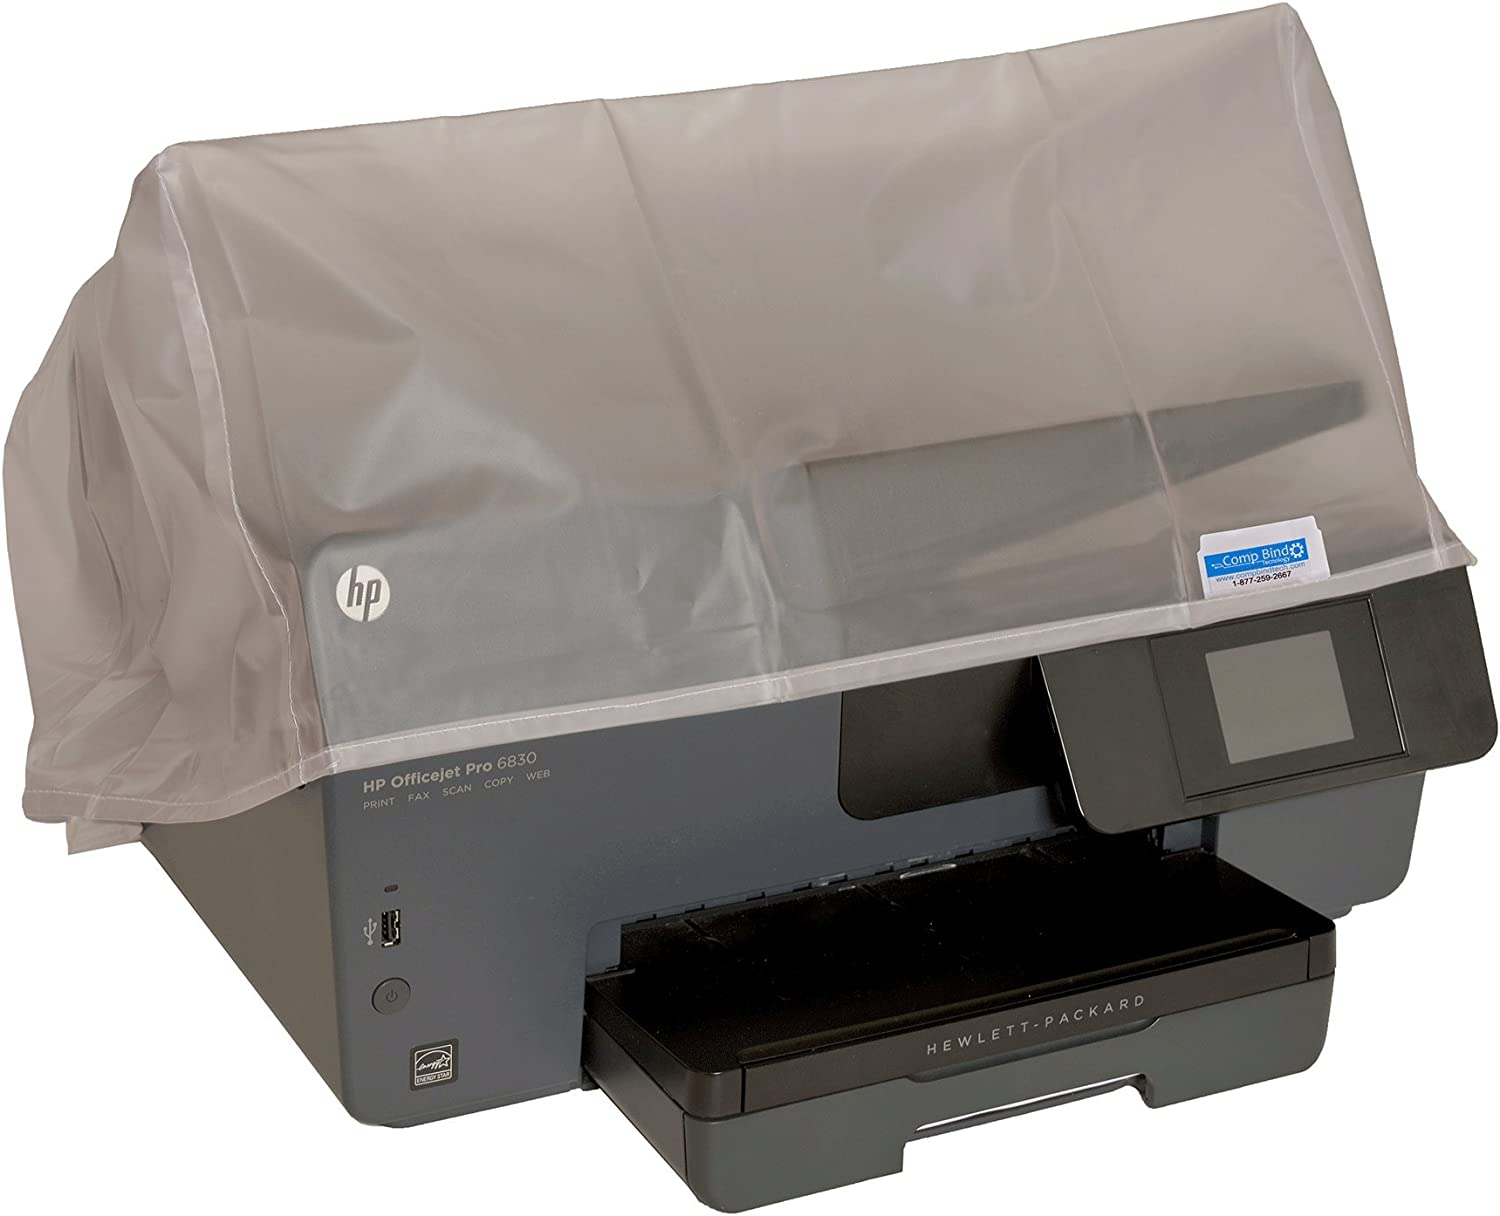 Comp Bind Technology Dust Cover for Epson Expression XP-7100 Wireless Color Printer Clear Vinyl Anti-Static Dust Cover Dimensions 15.4W x 13.3D x 7.5H